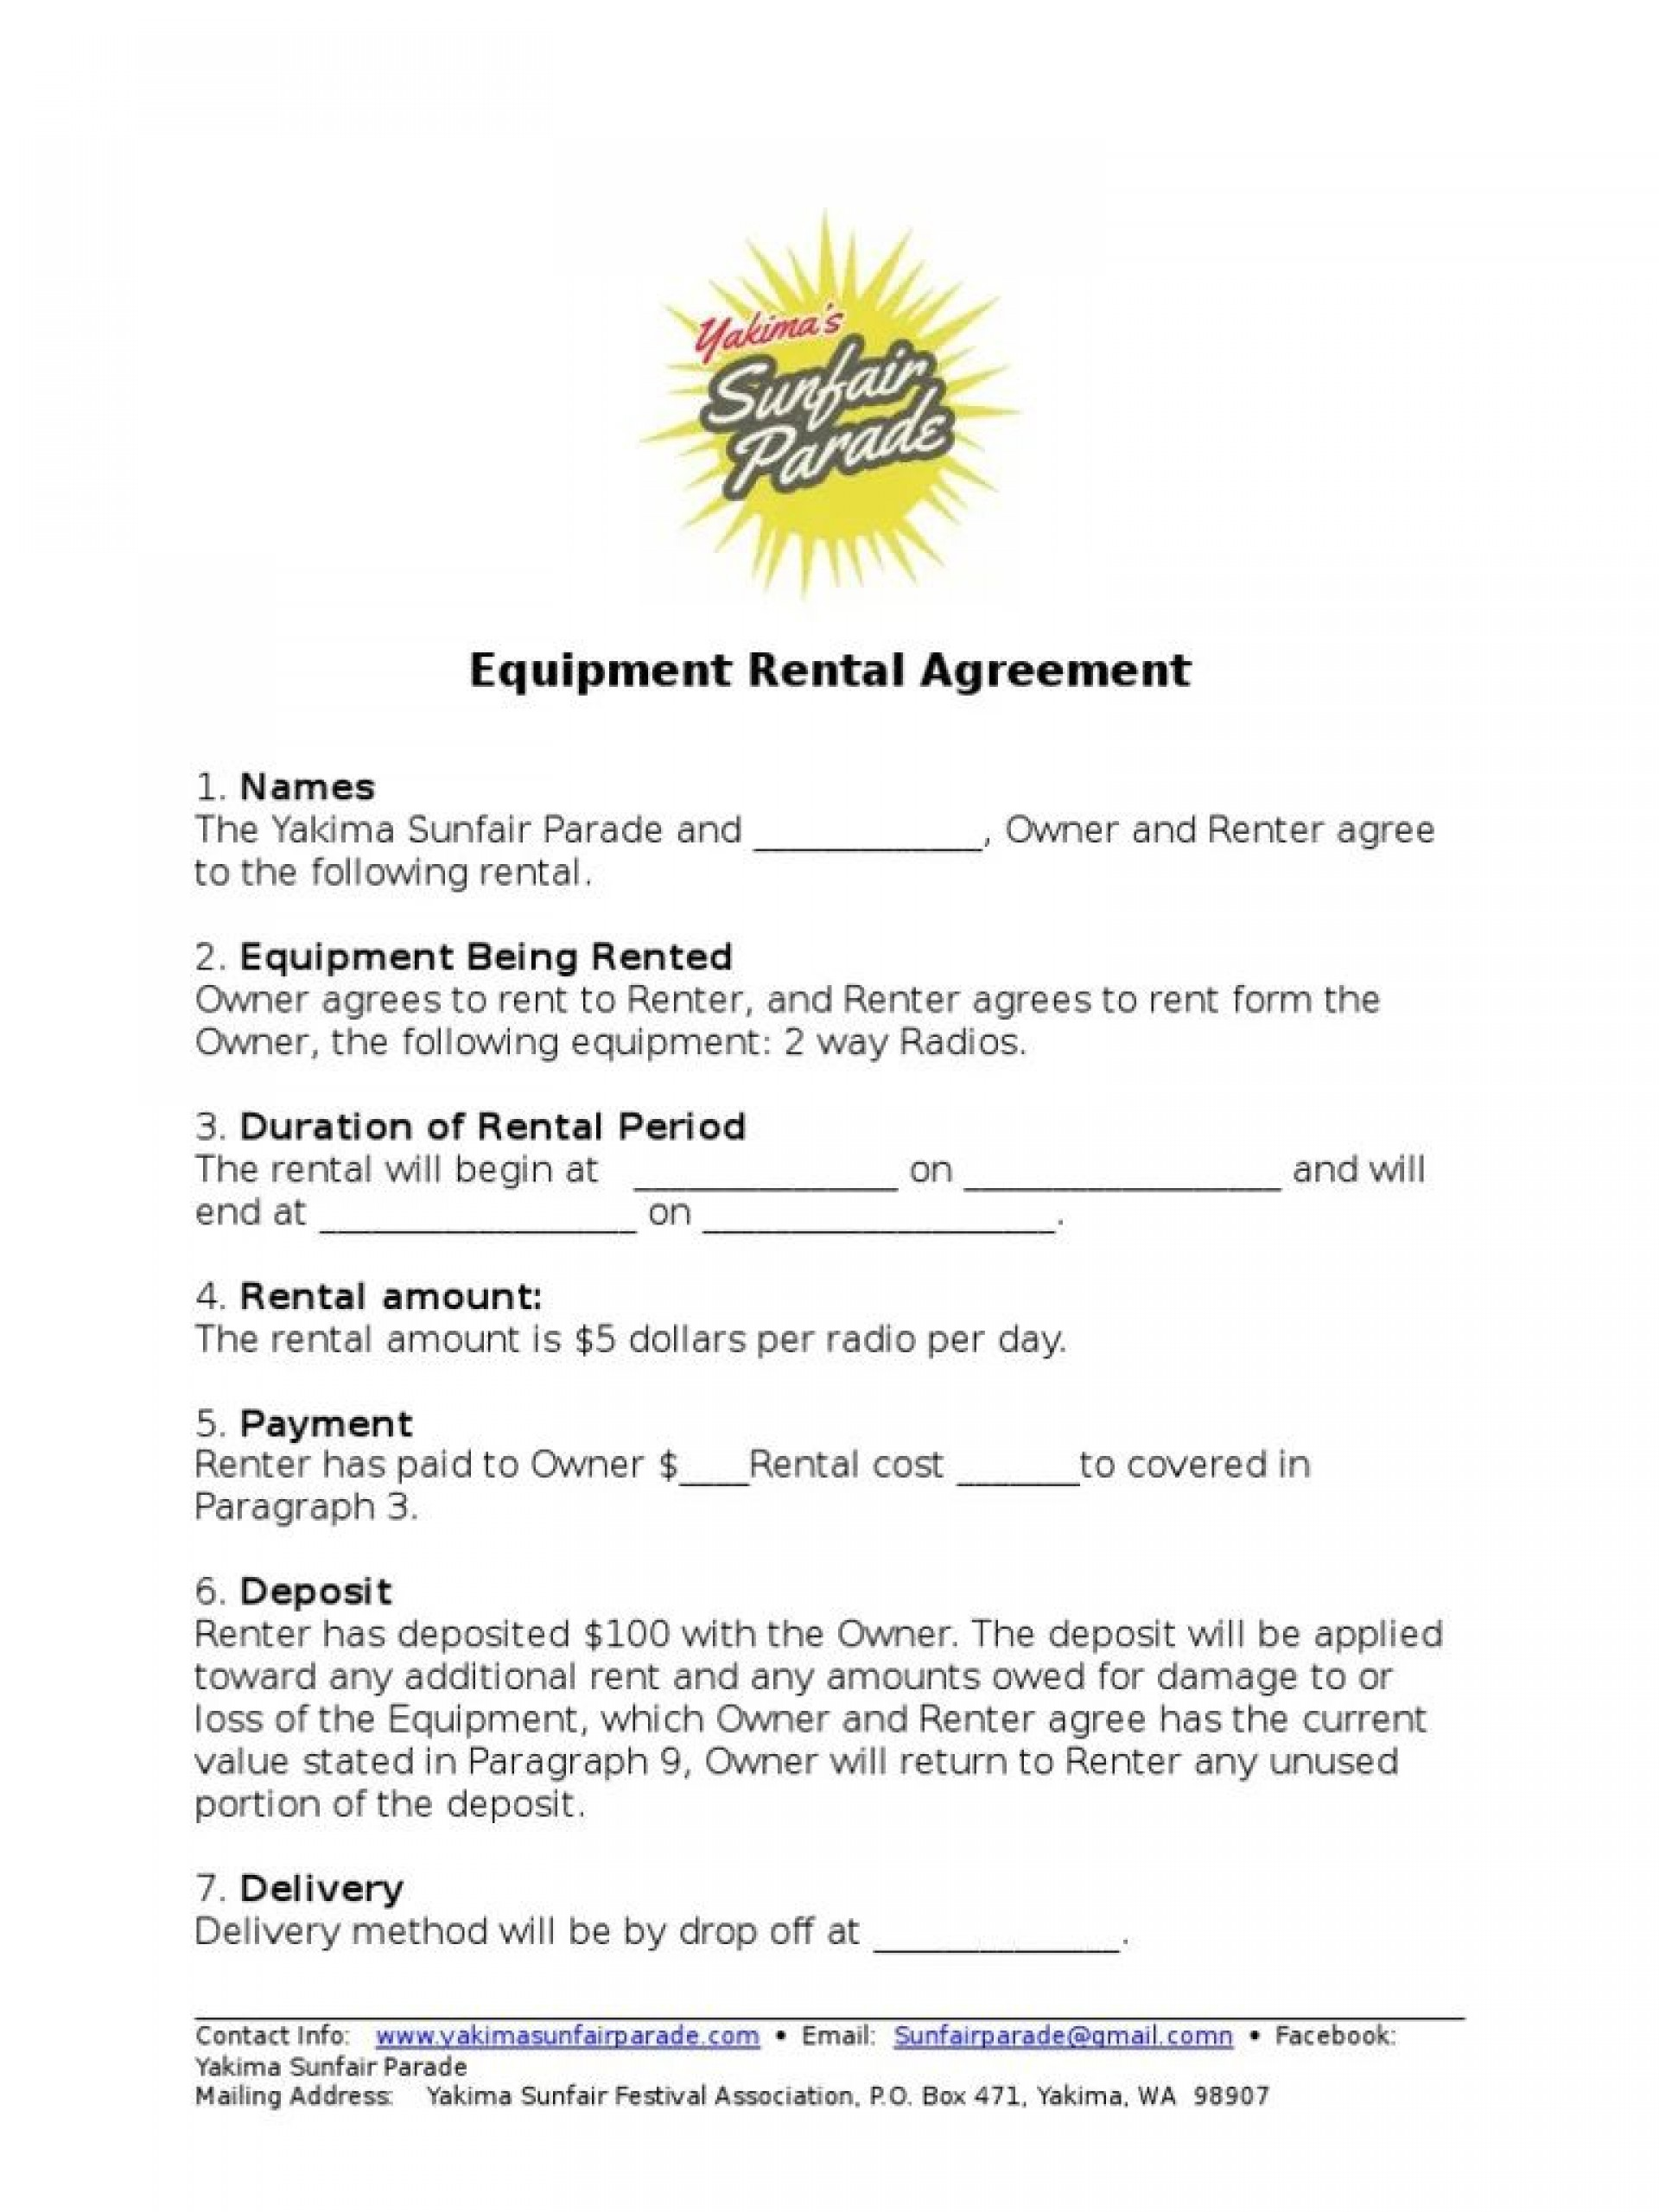 002 Archaicawful Equipment Rental Agreement Template Design  Canada Free South Africa Pdf1920